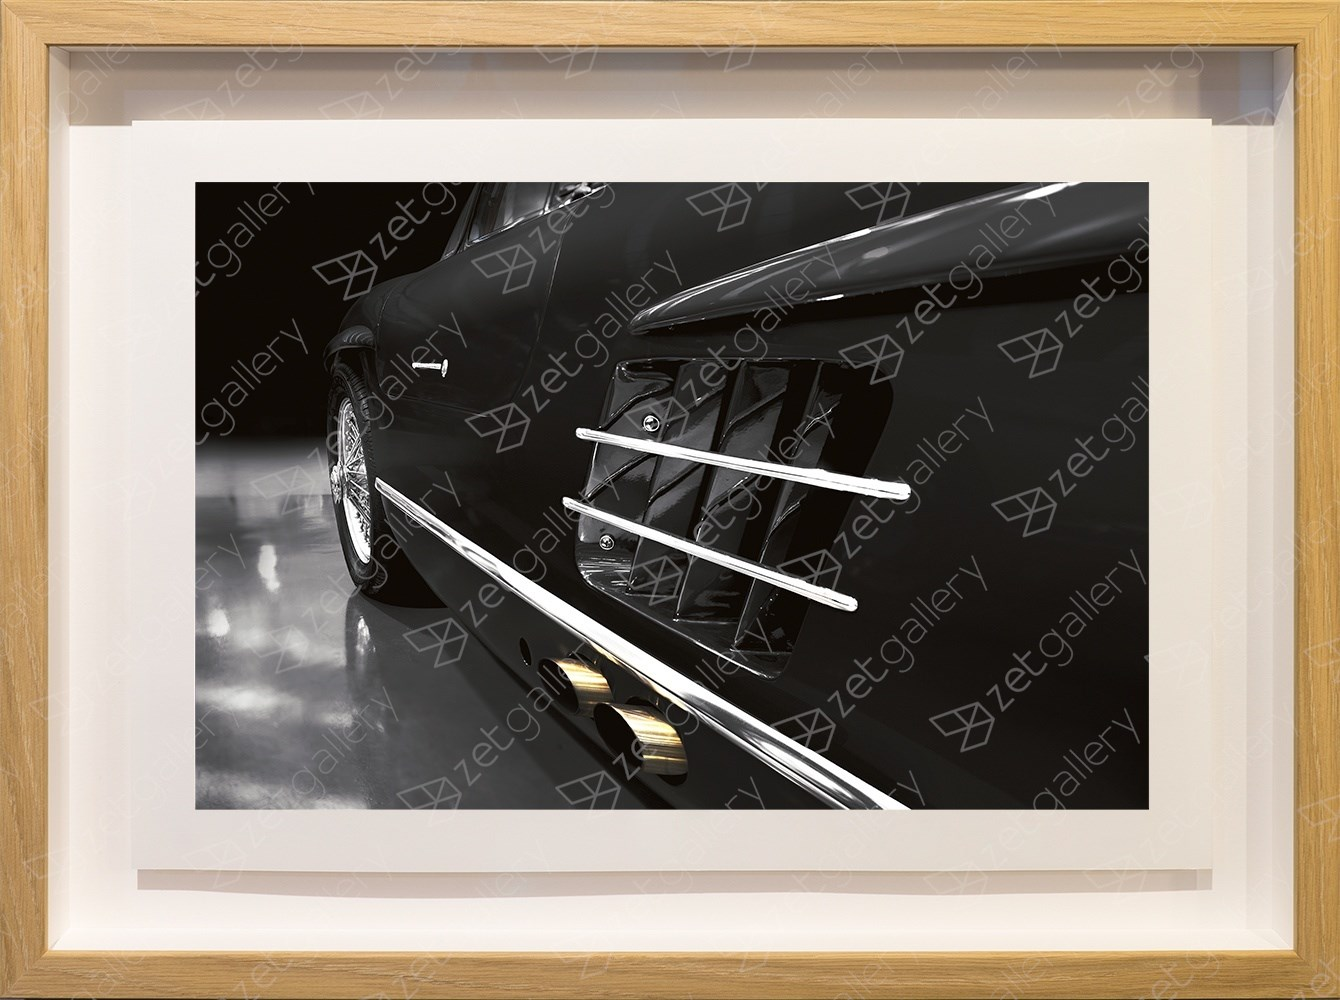 Mercedes-Benz 300SL Gullwing 01, original Avant-Garde Digital Photography by Yggdrasil Art